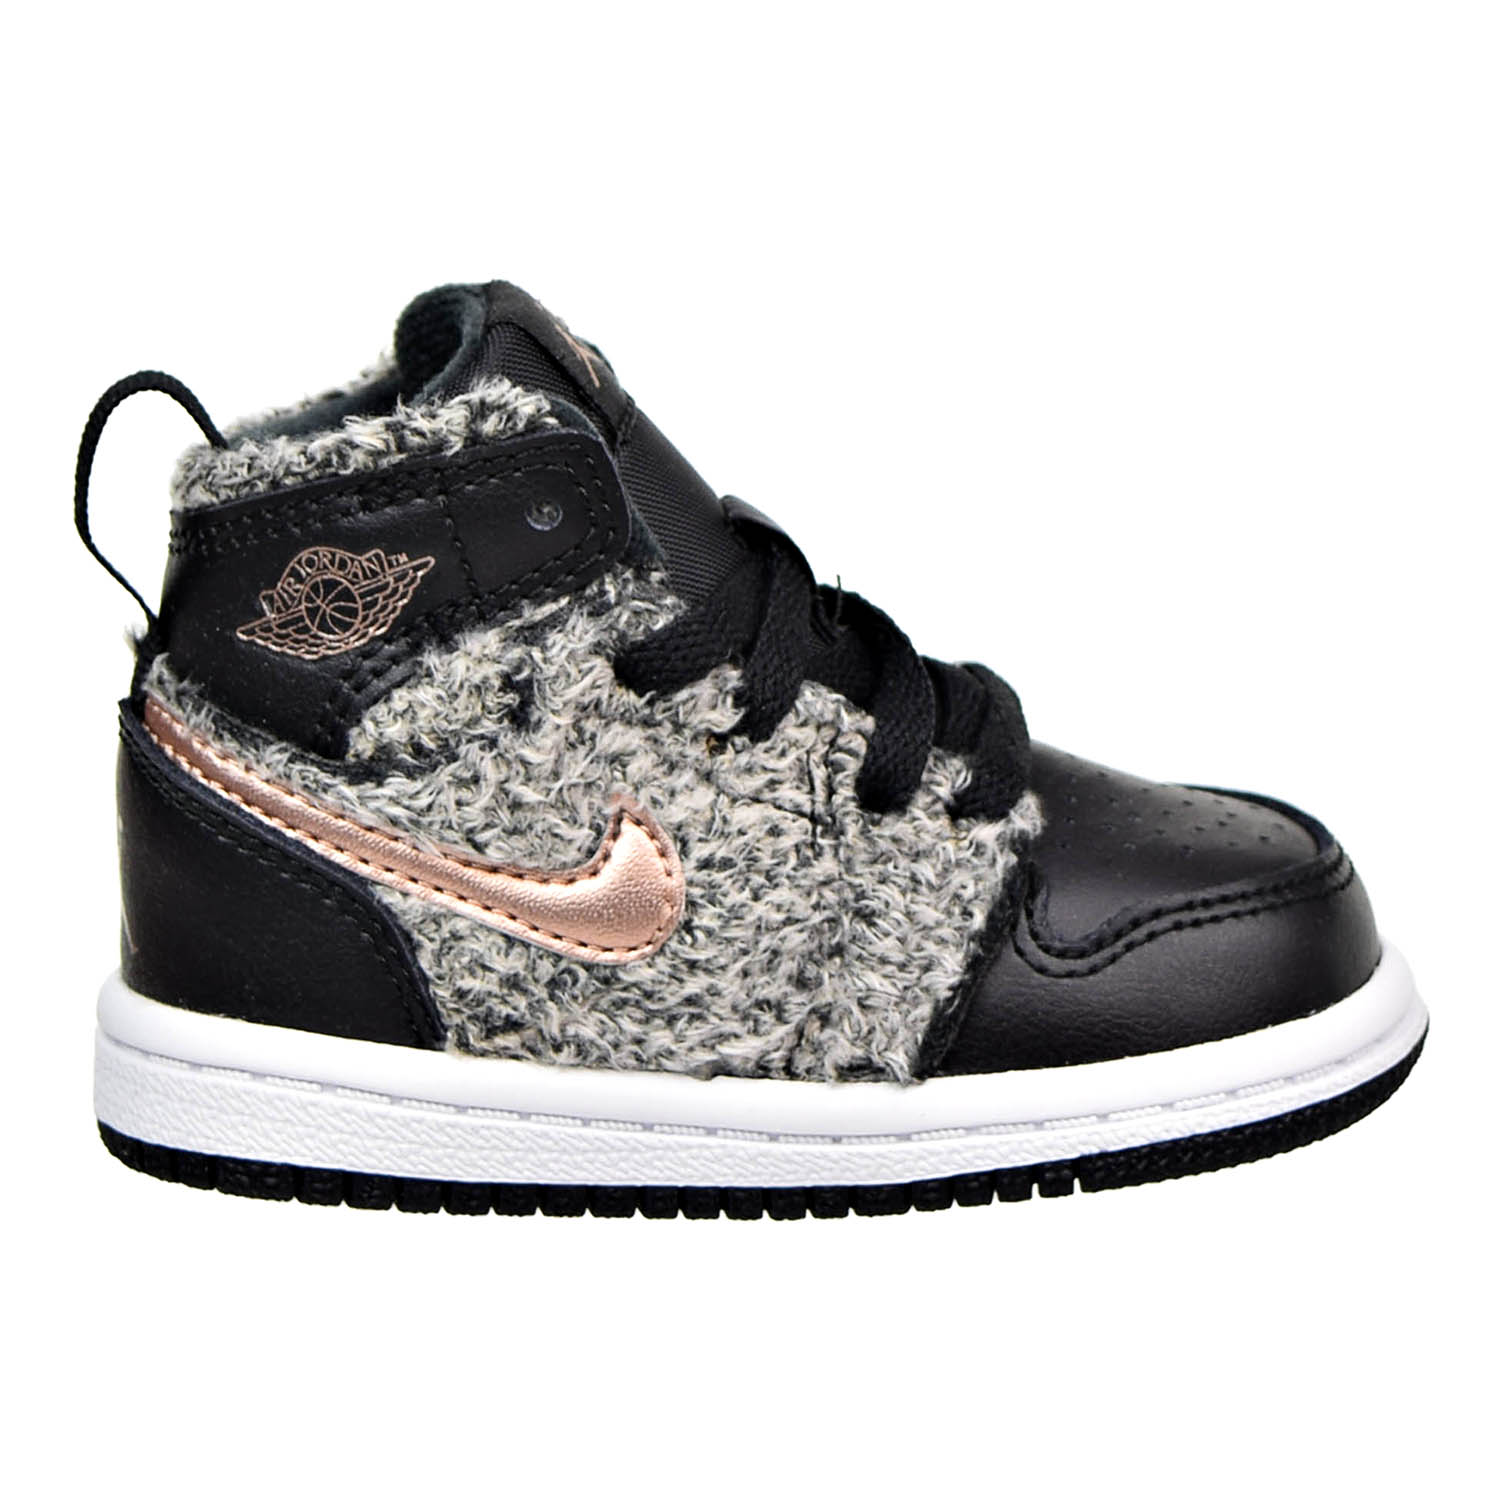 45c9048b483be Details about Jordan 1 Retro High GT Toddler's Shoes Black/Red  Bronze-705324-022